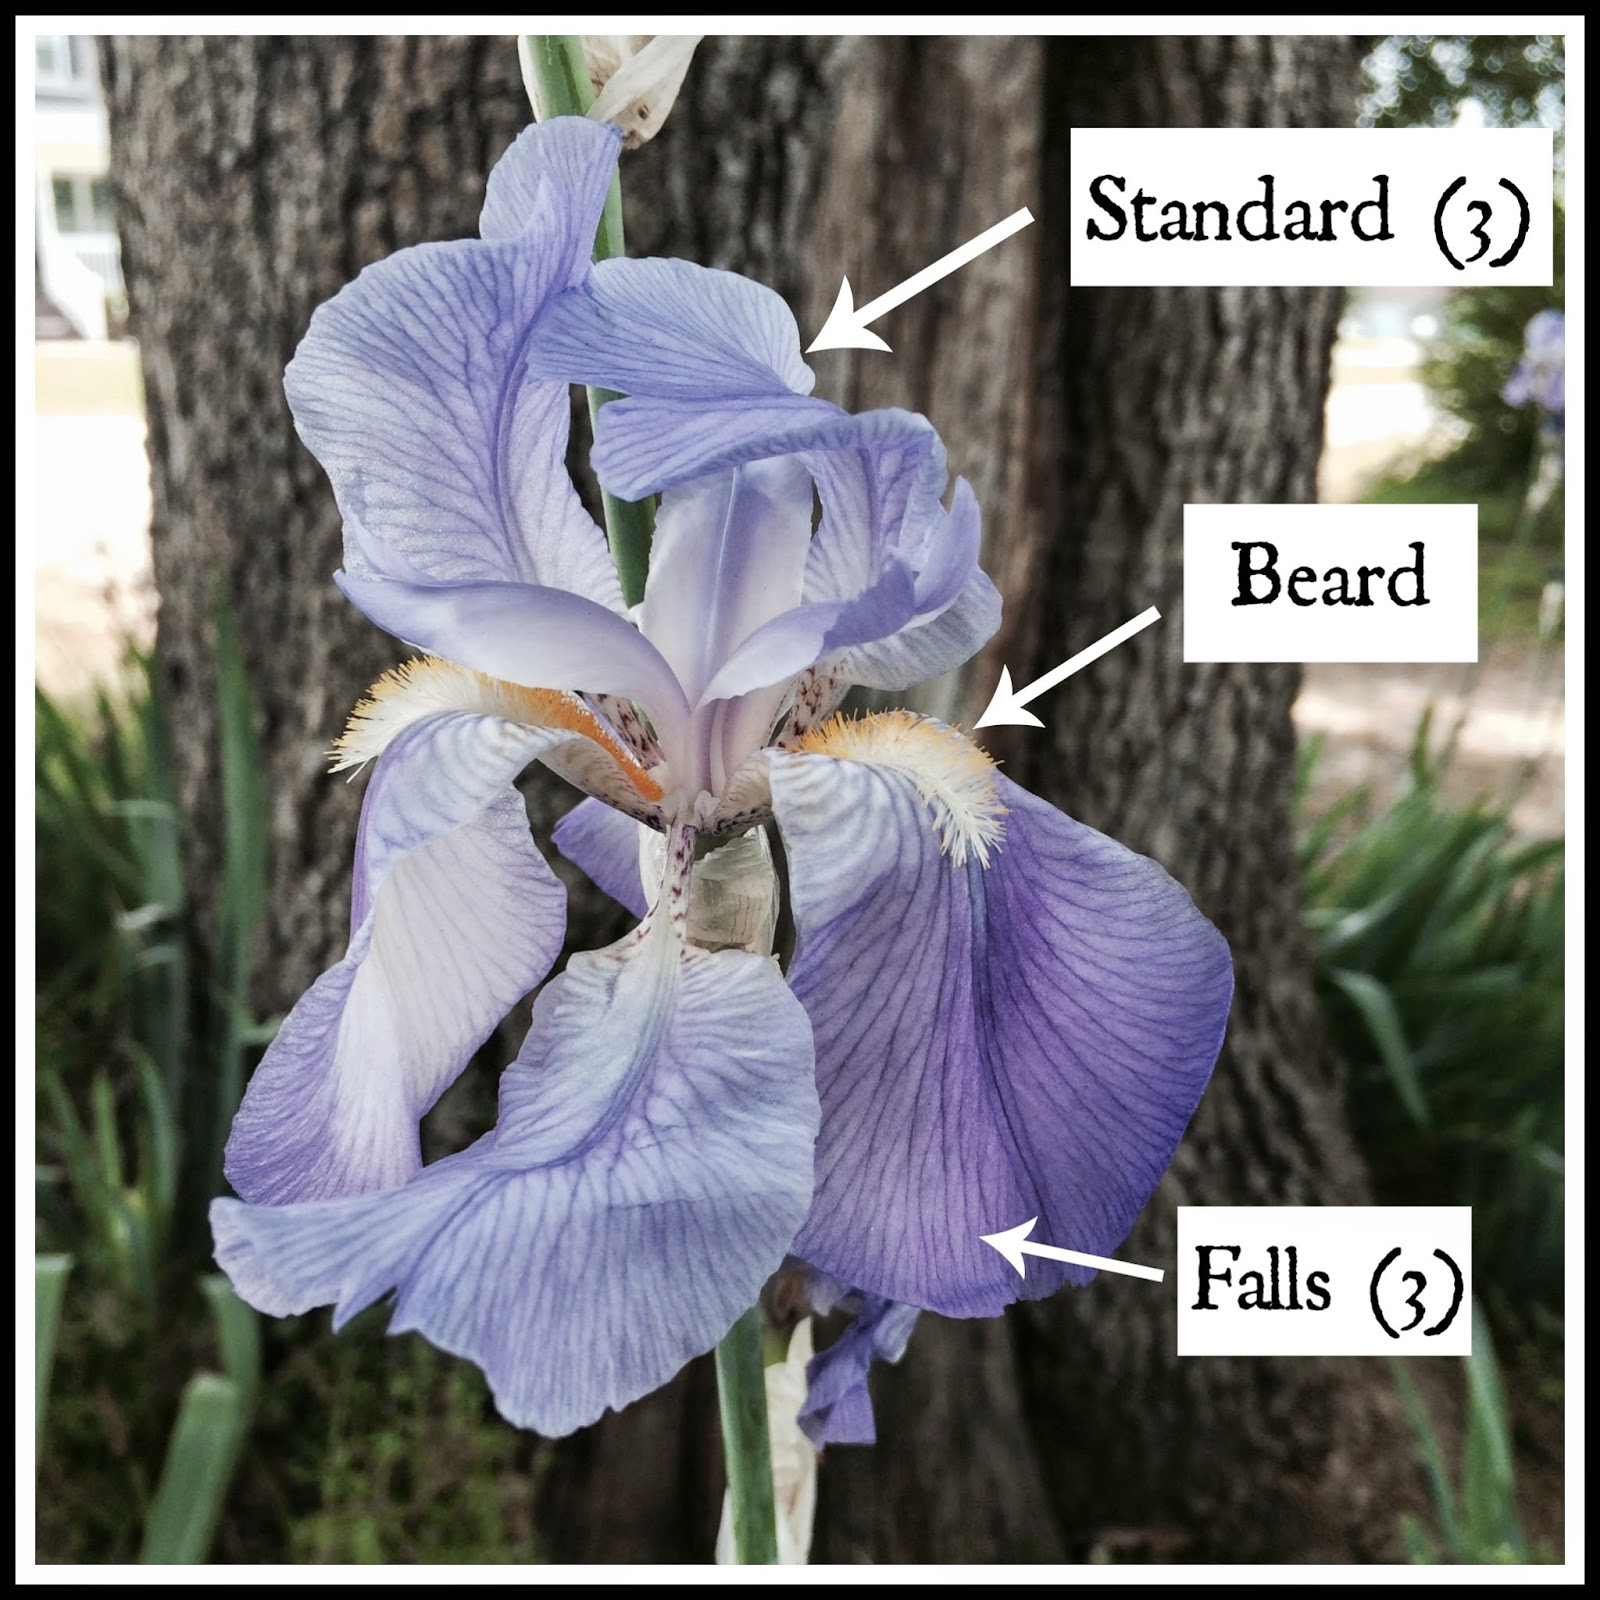 Acorn hill academy nature study iris sara had us go out and identify the parts of an iris flower and let me tell you there are more than i ever thought there would be izmirmasajfo